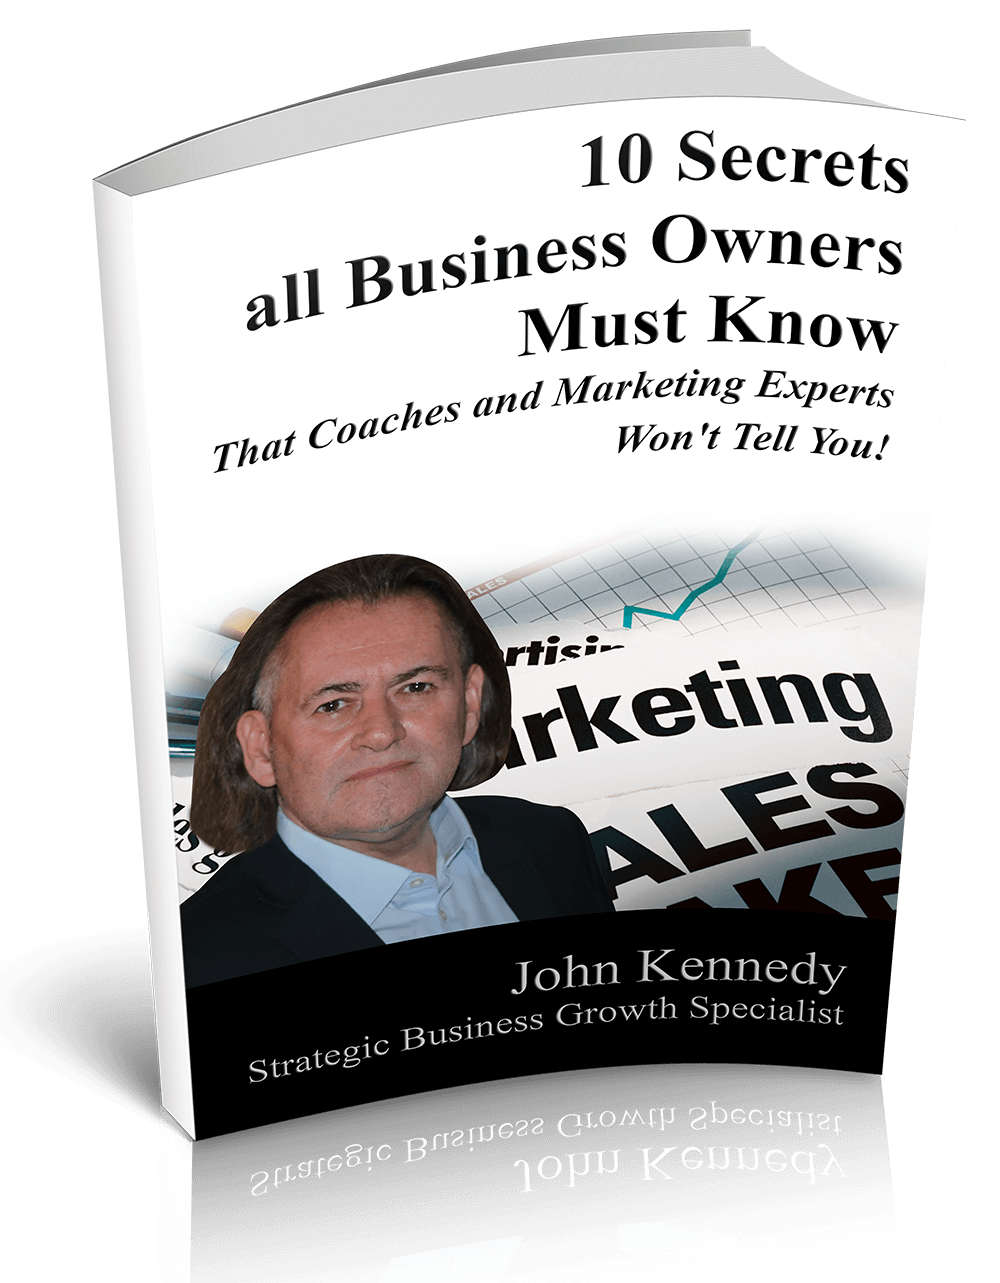 10 Secrets All Business Owners Must Know